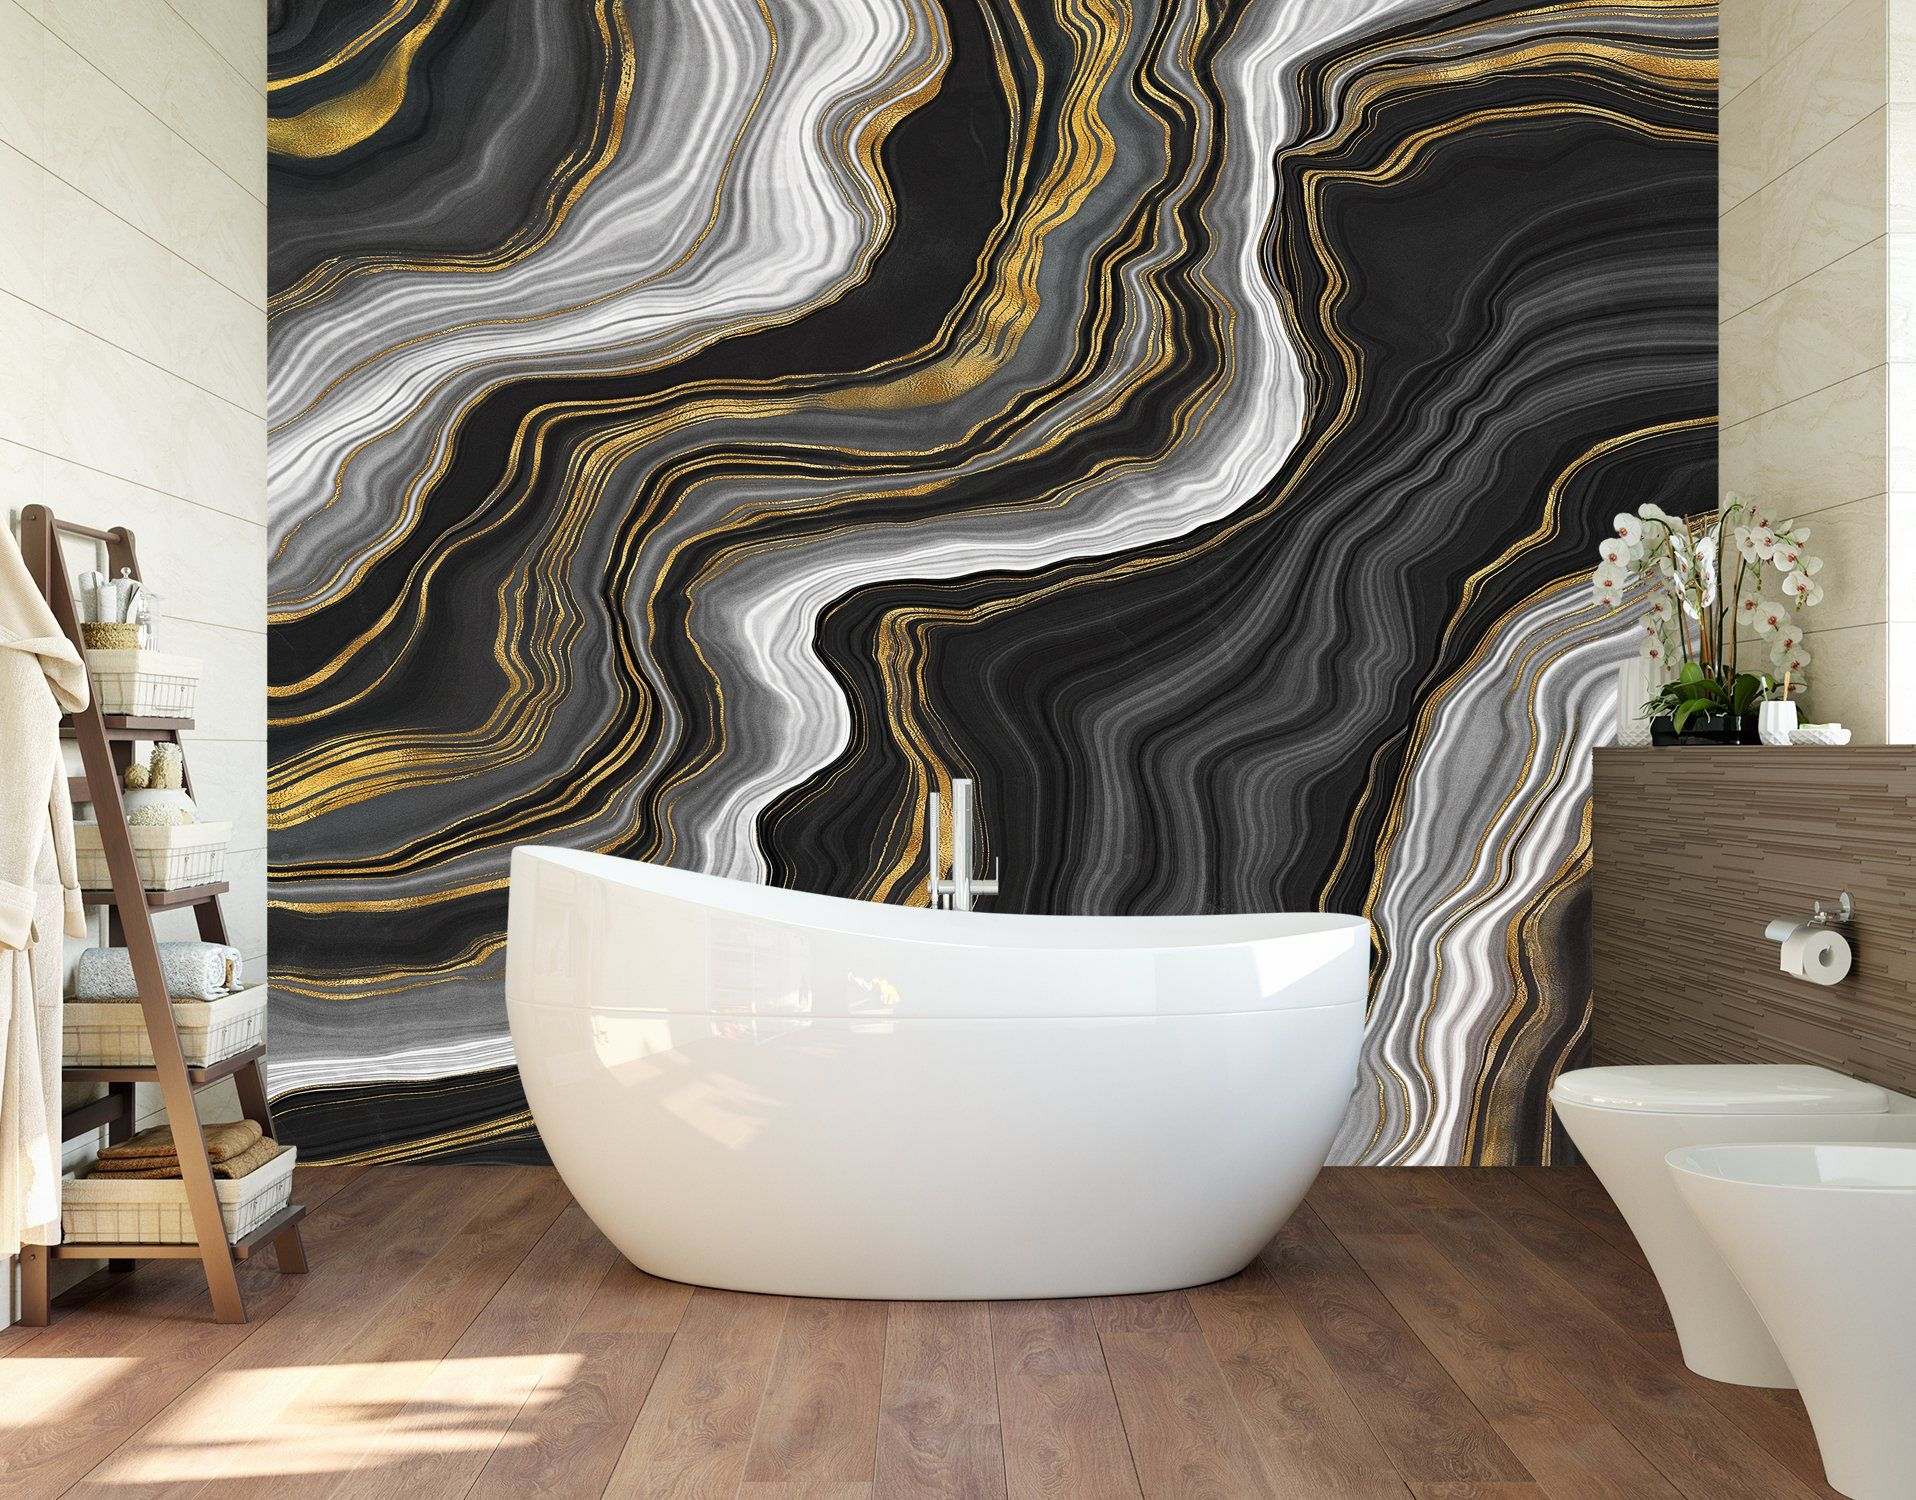 Black And Gold Abstract Marble Stone Pattern Peel And Stick Wallpaper 6146 2 Stone Pattern Wallpaper Accent Wall Wall Murals